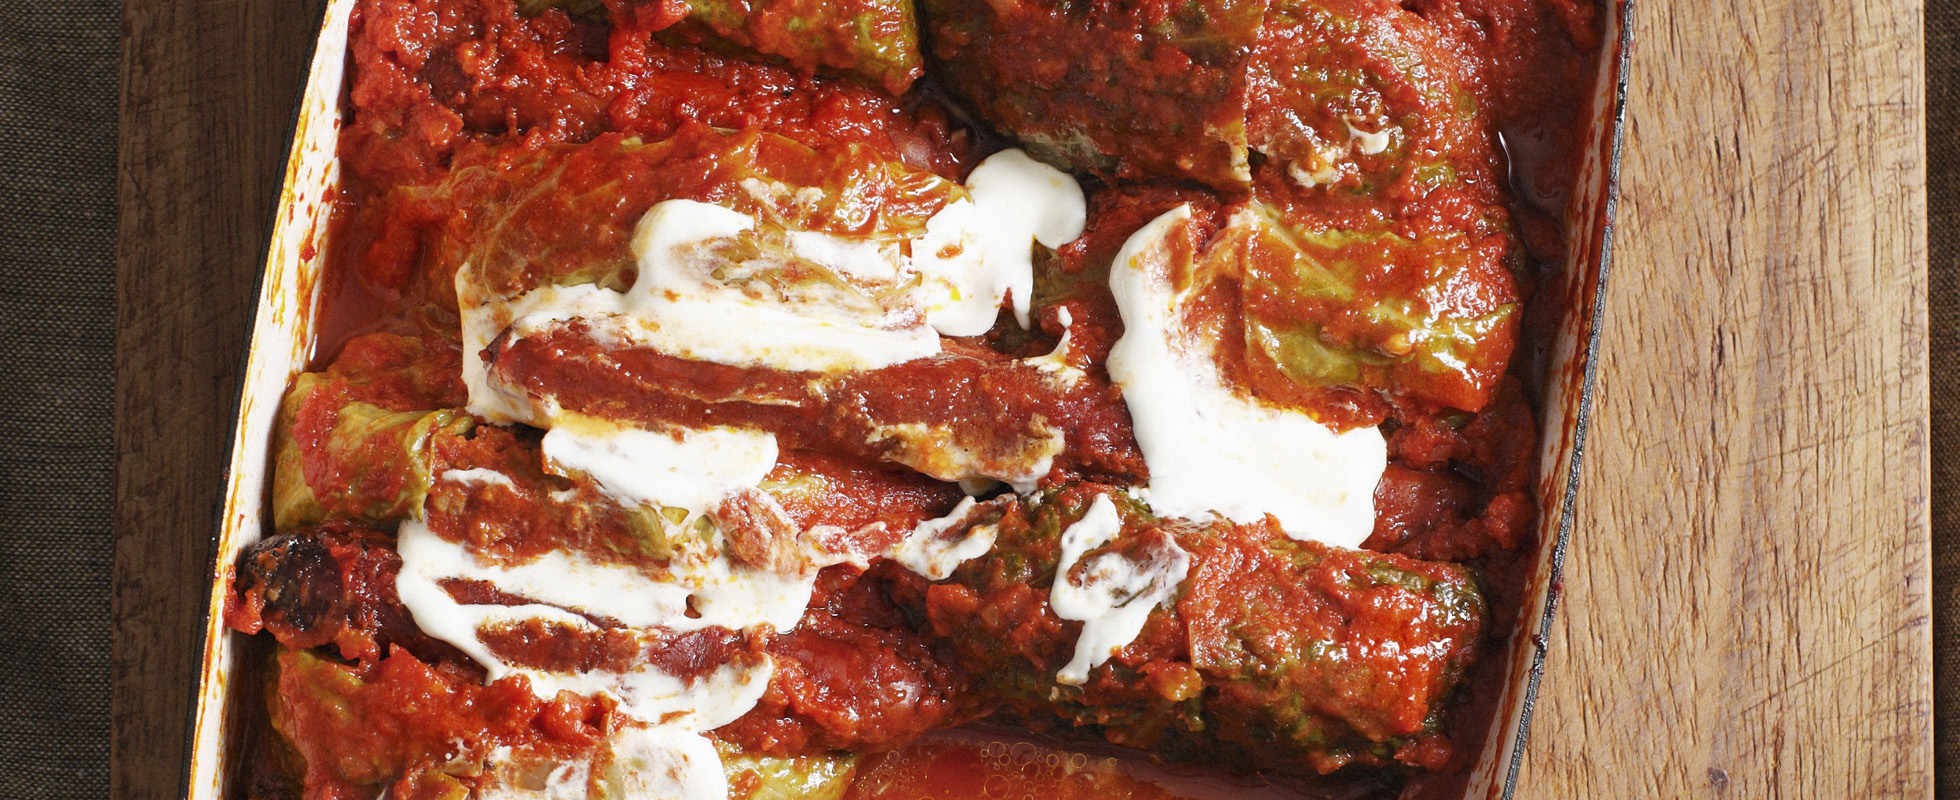 Polish stuffed cabbage rolls golabki in tomato sauce